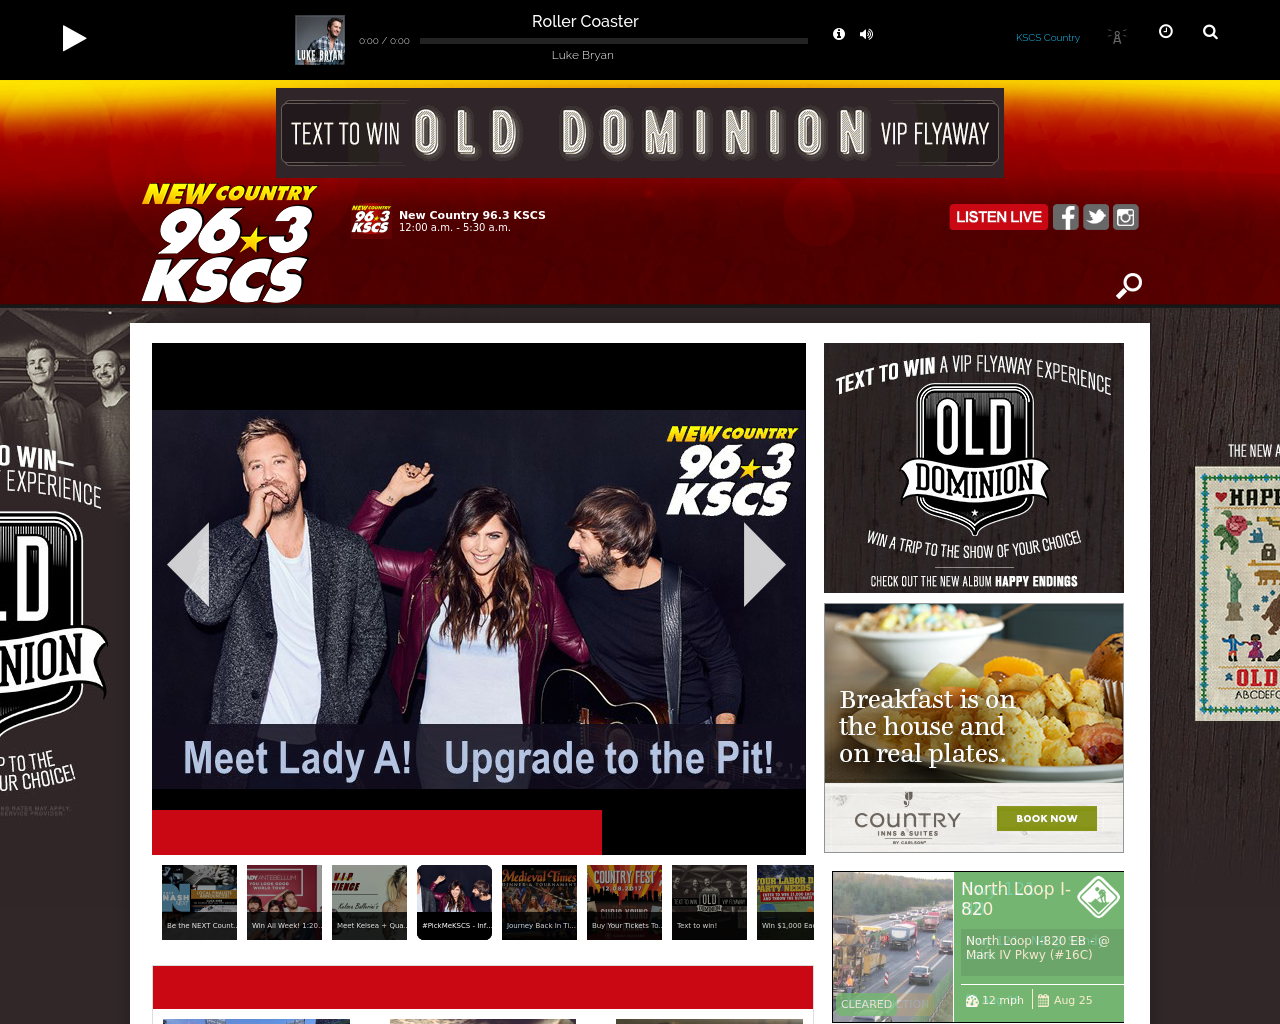 New-Country-96.3-KSCS-FM-Advertising-Reviews-Pricing